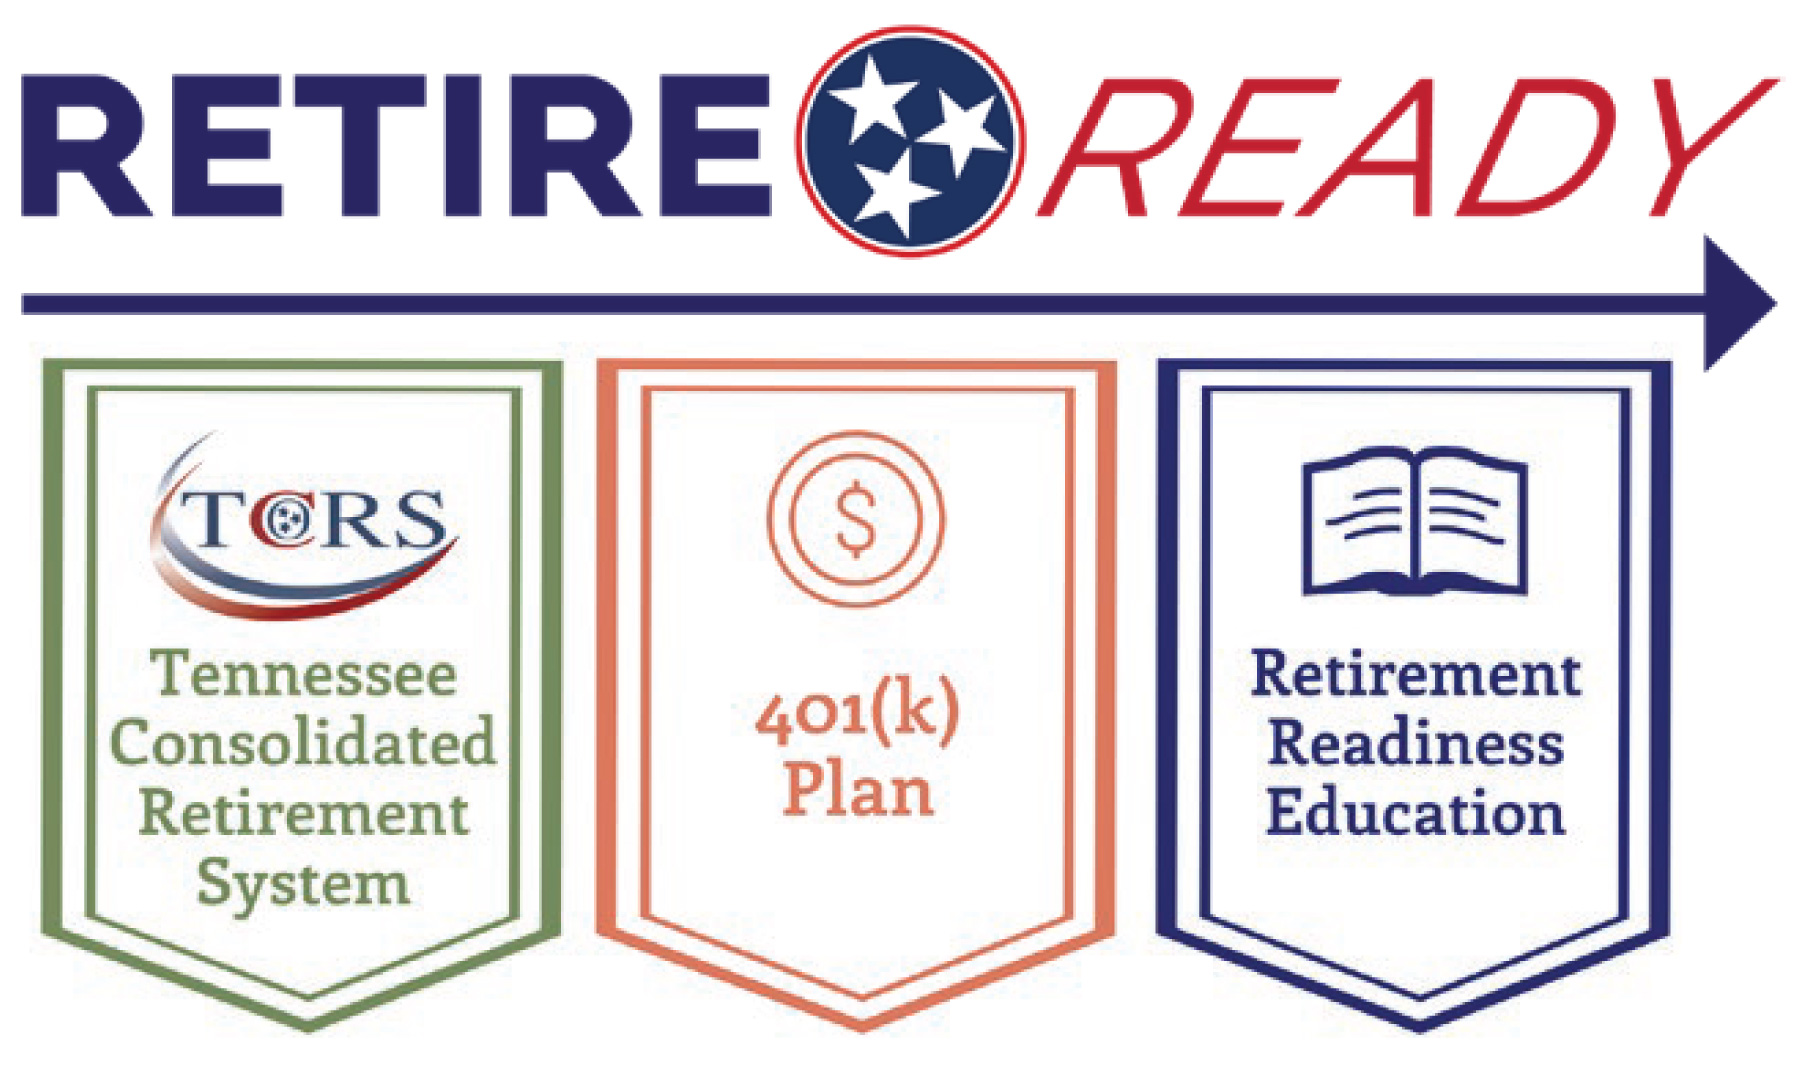 RetireReadyTN logo with three component flags